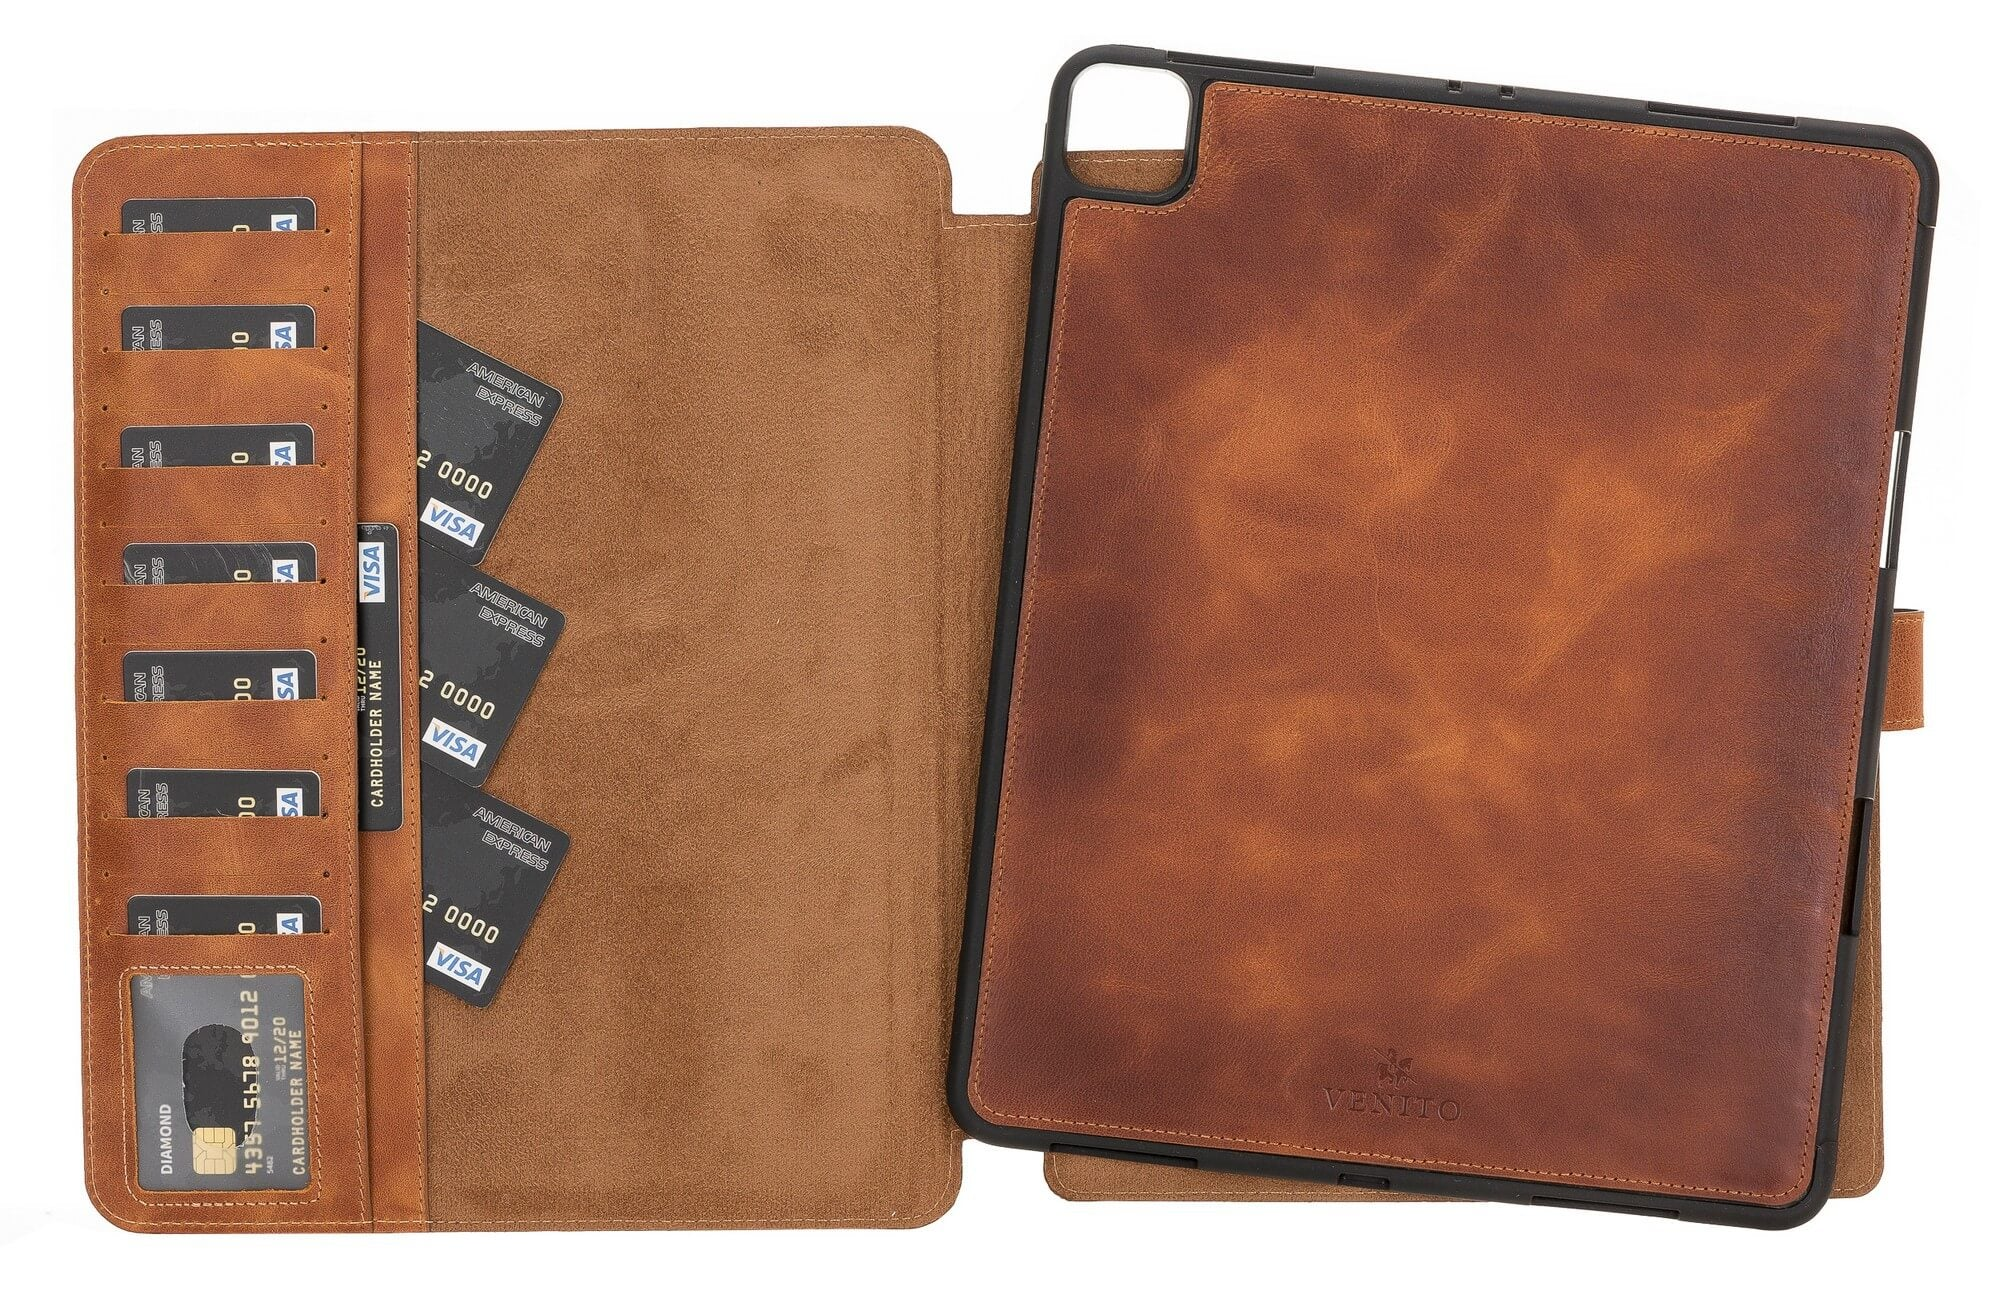 Parma Leather Wallet Case for iPad Pro 12.9 2020